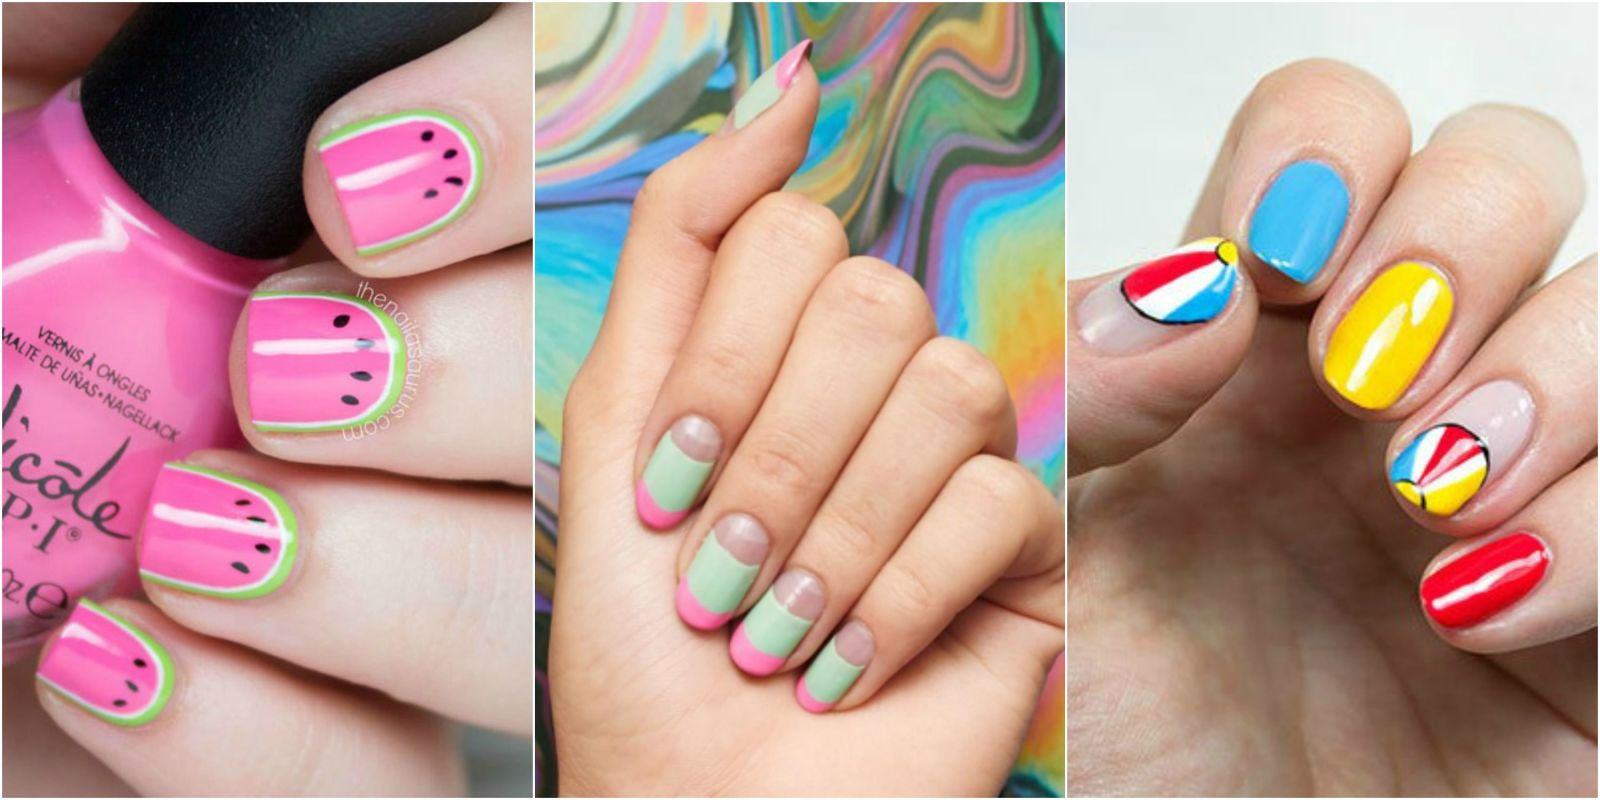 30 Summer Nail Designs For 2017   Best Nail Polish Art Ideas For Summer